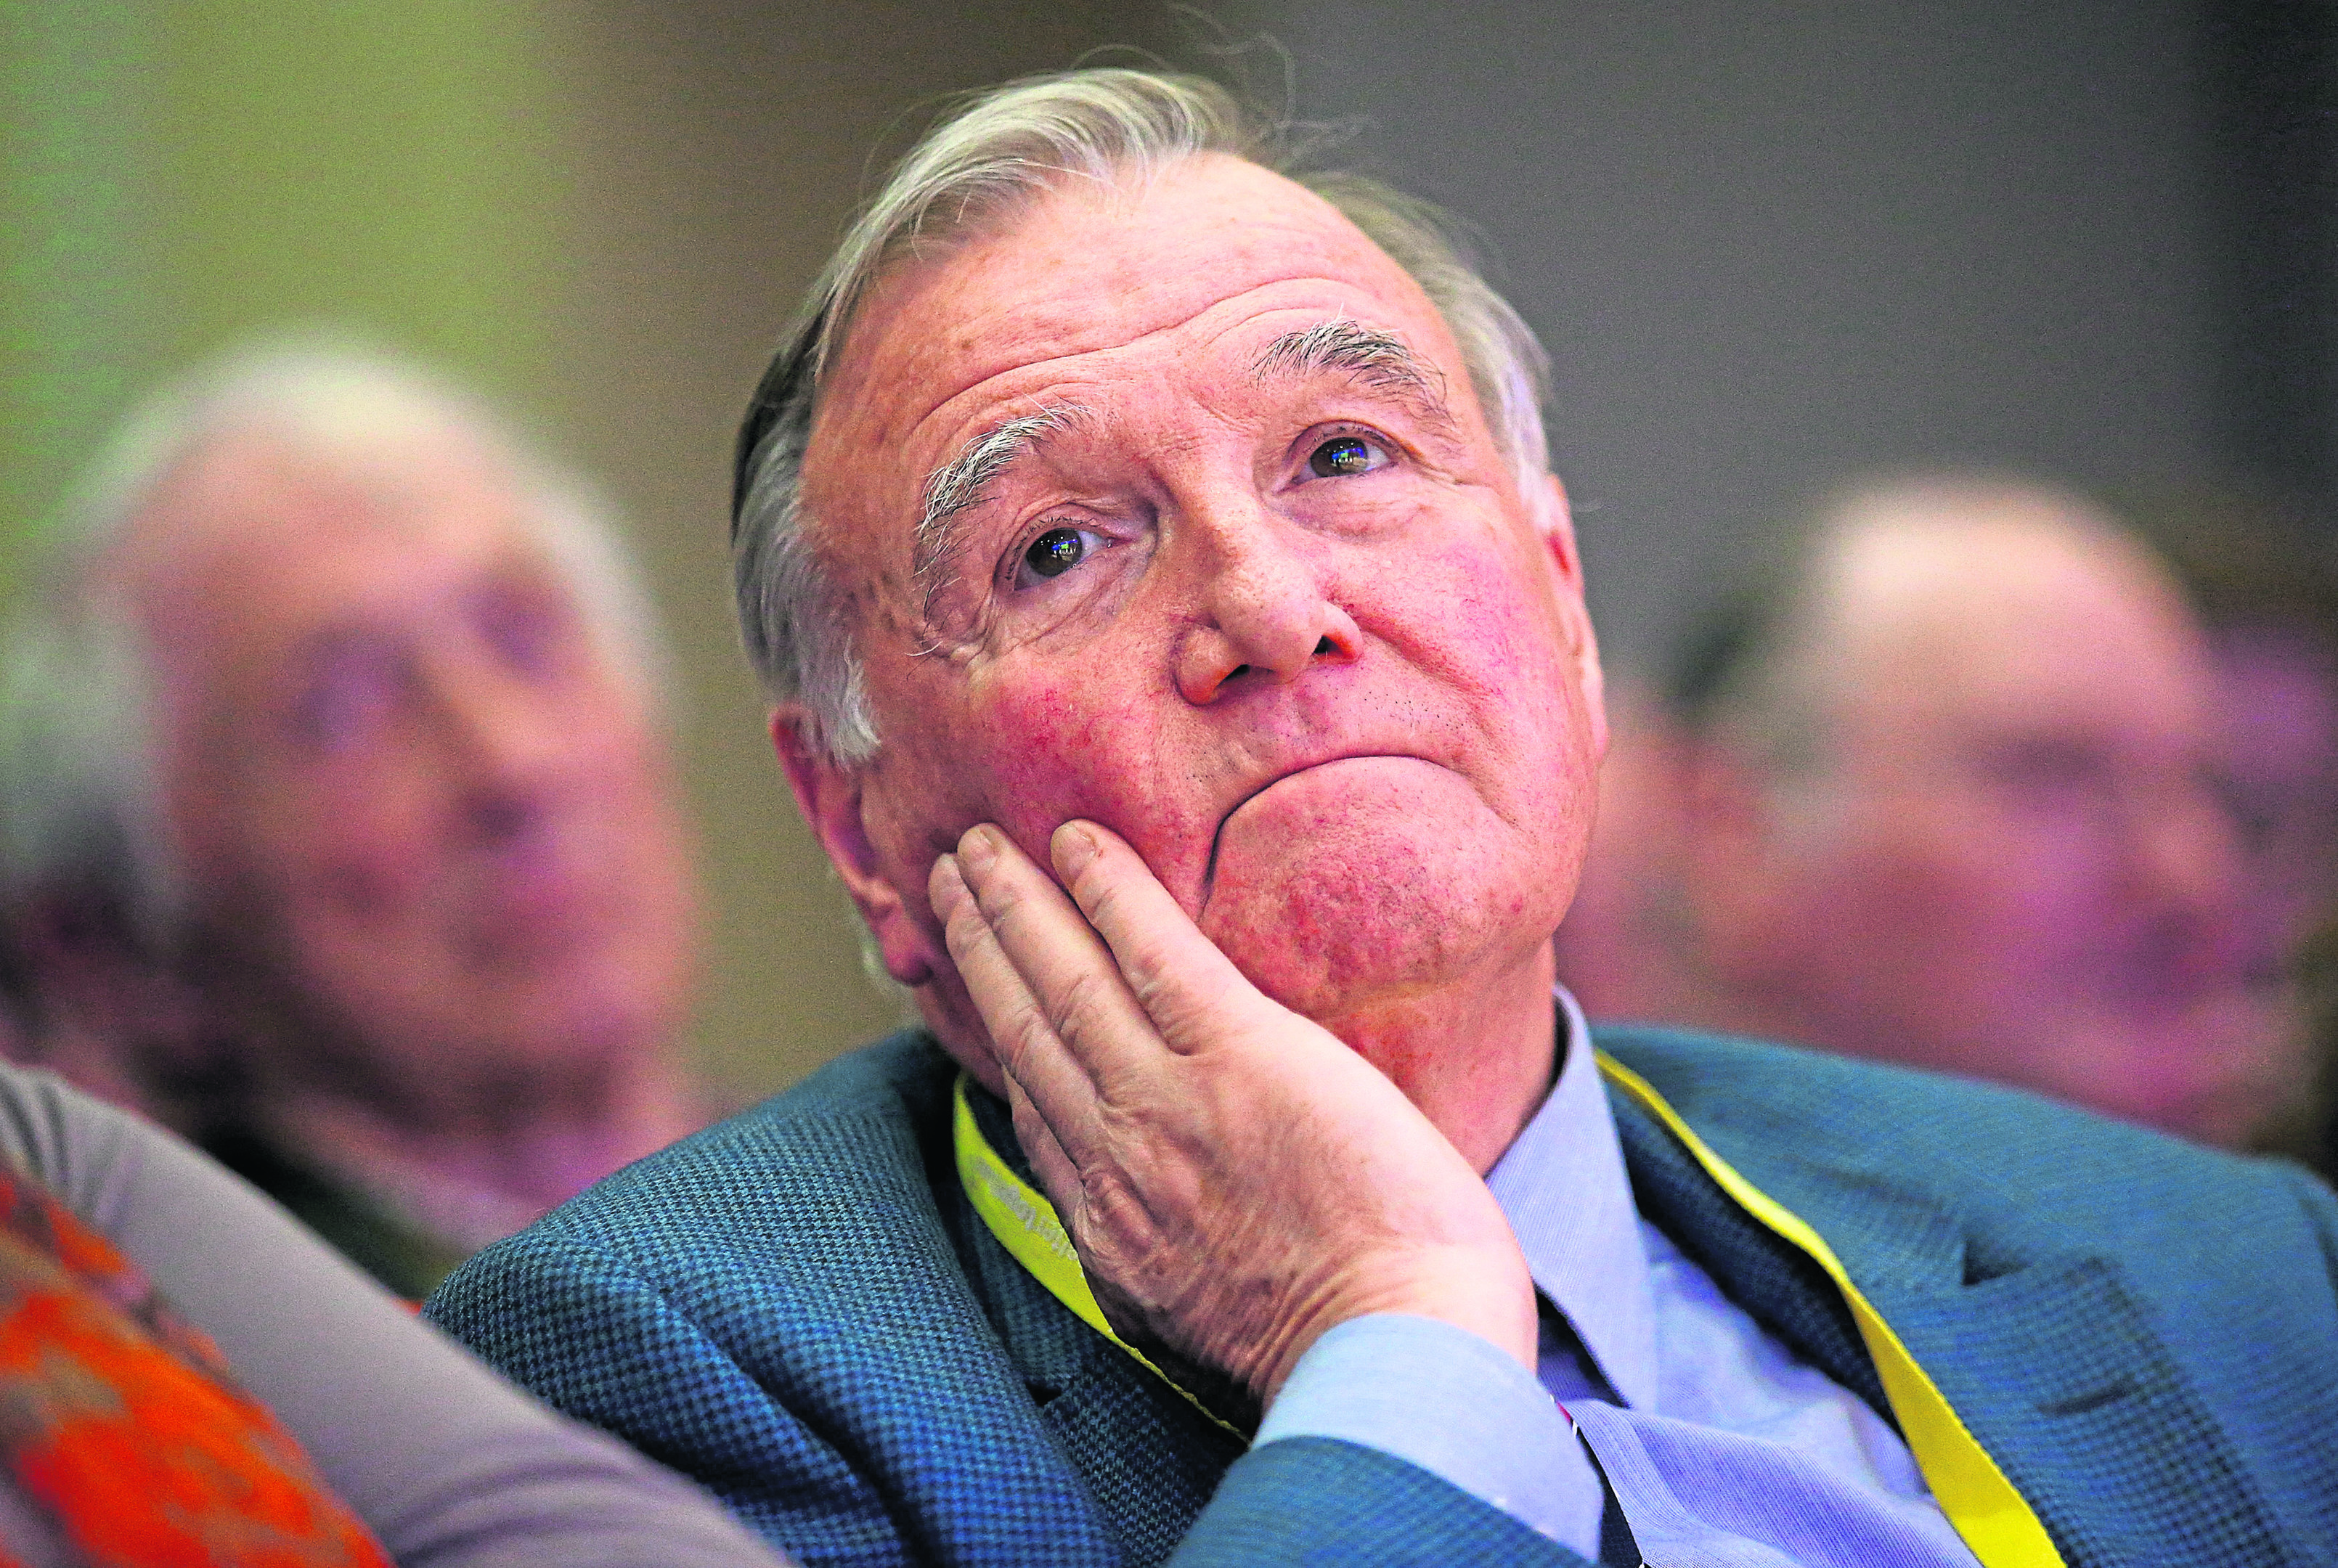 File photo dated 21/03/15 of Sir Malcolm Bruce, who has said that the House of Commons would be cleared out very fast if every MP, Cabinet minister and Prime Minister who told a brazen lie had to quit. PRESS ASSOCIATION Photo. Issue date: Tuesday May 26, 2015. Sir Malcolm Bruce made the claim as he defended former Scottish secretary Alistair Carmichael's conduct in relation to a leaked memo. See PA story POLITICS Memo. Photo credit should read: Andrew Milligan/PA Wire